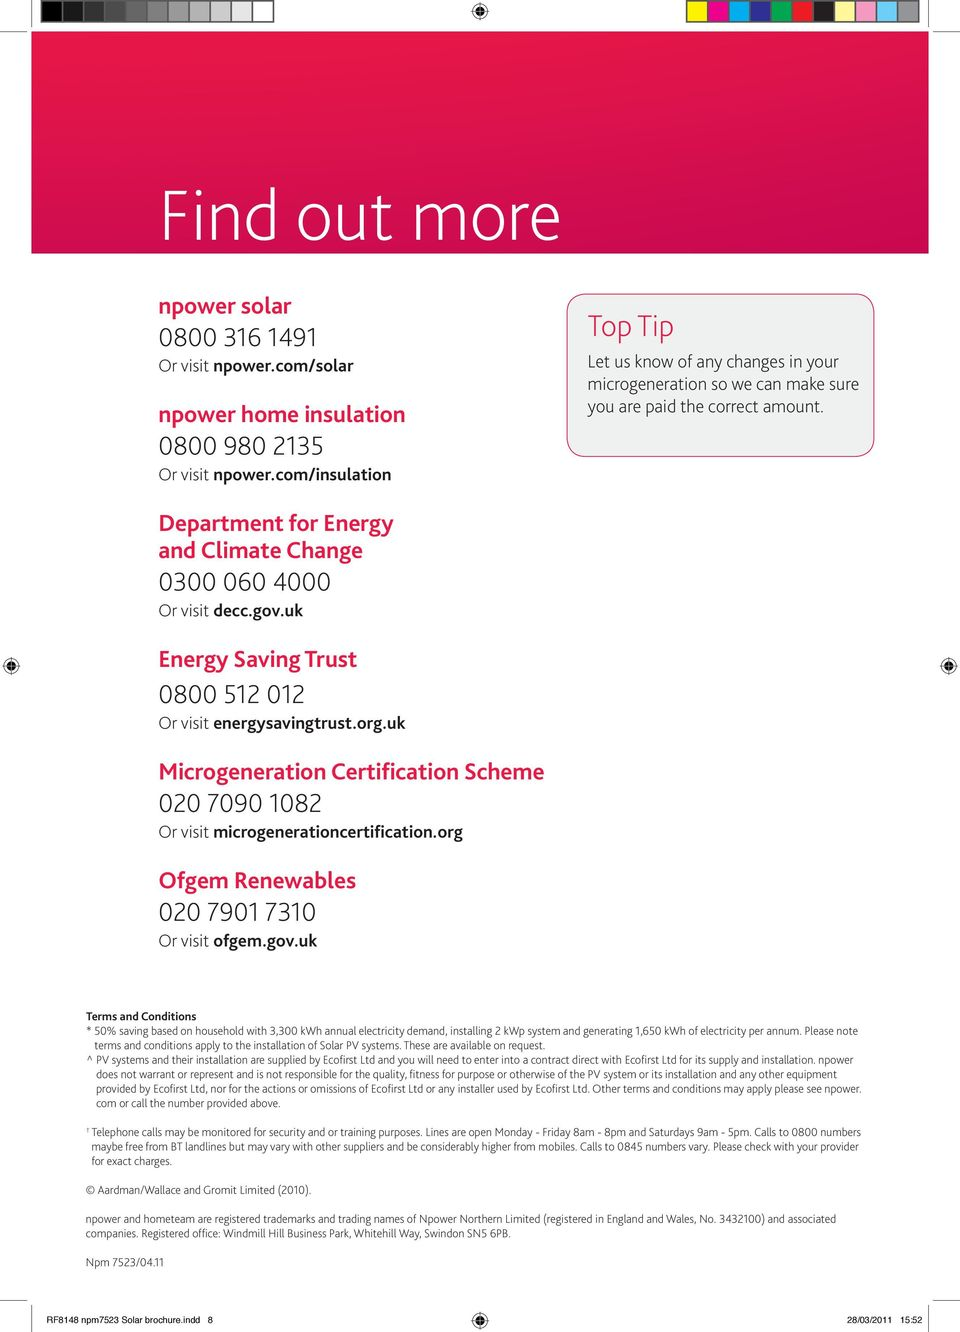 uk Energy Saving Trust 0800 512 012 Or visit energysavingtrust.org.uk Microgeneration Certification Scheme 020 7090 1082 Or visit microgenerationcertification.